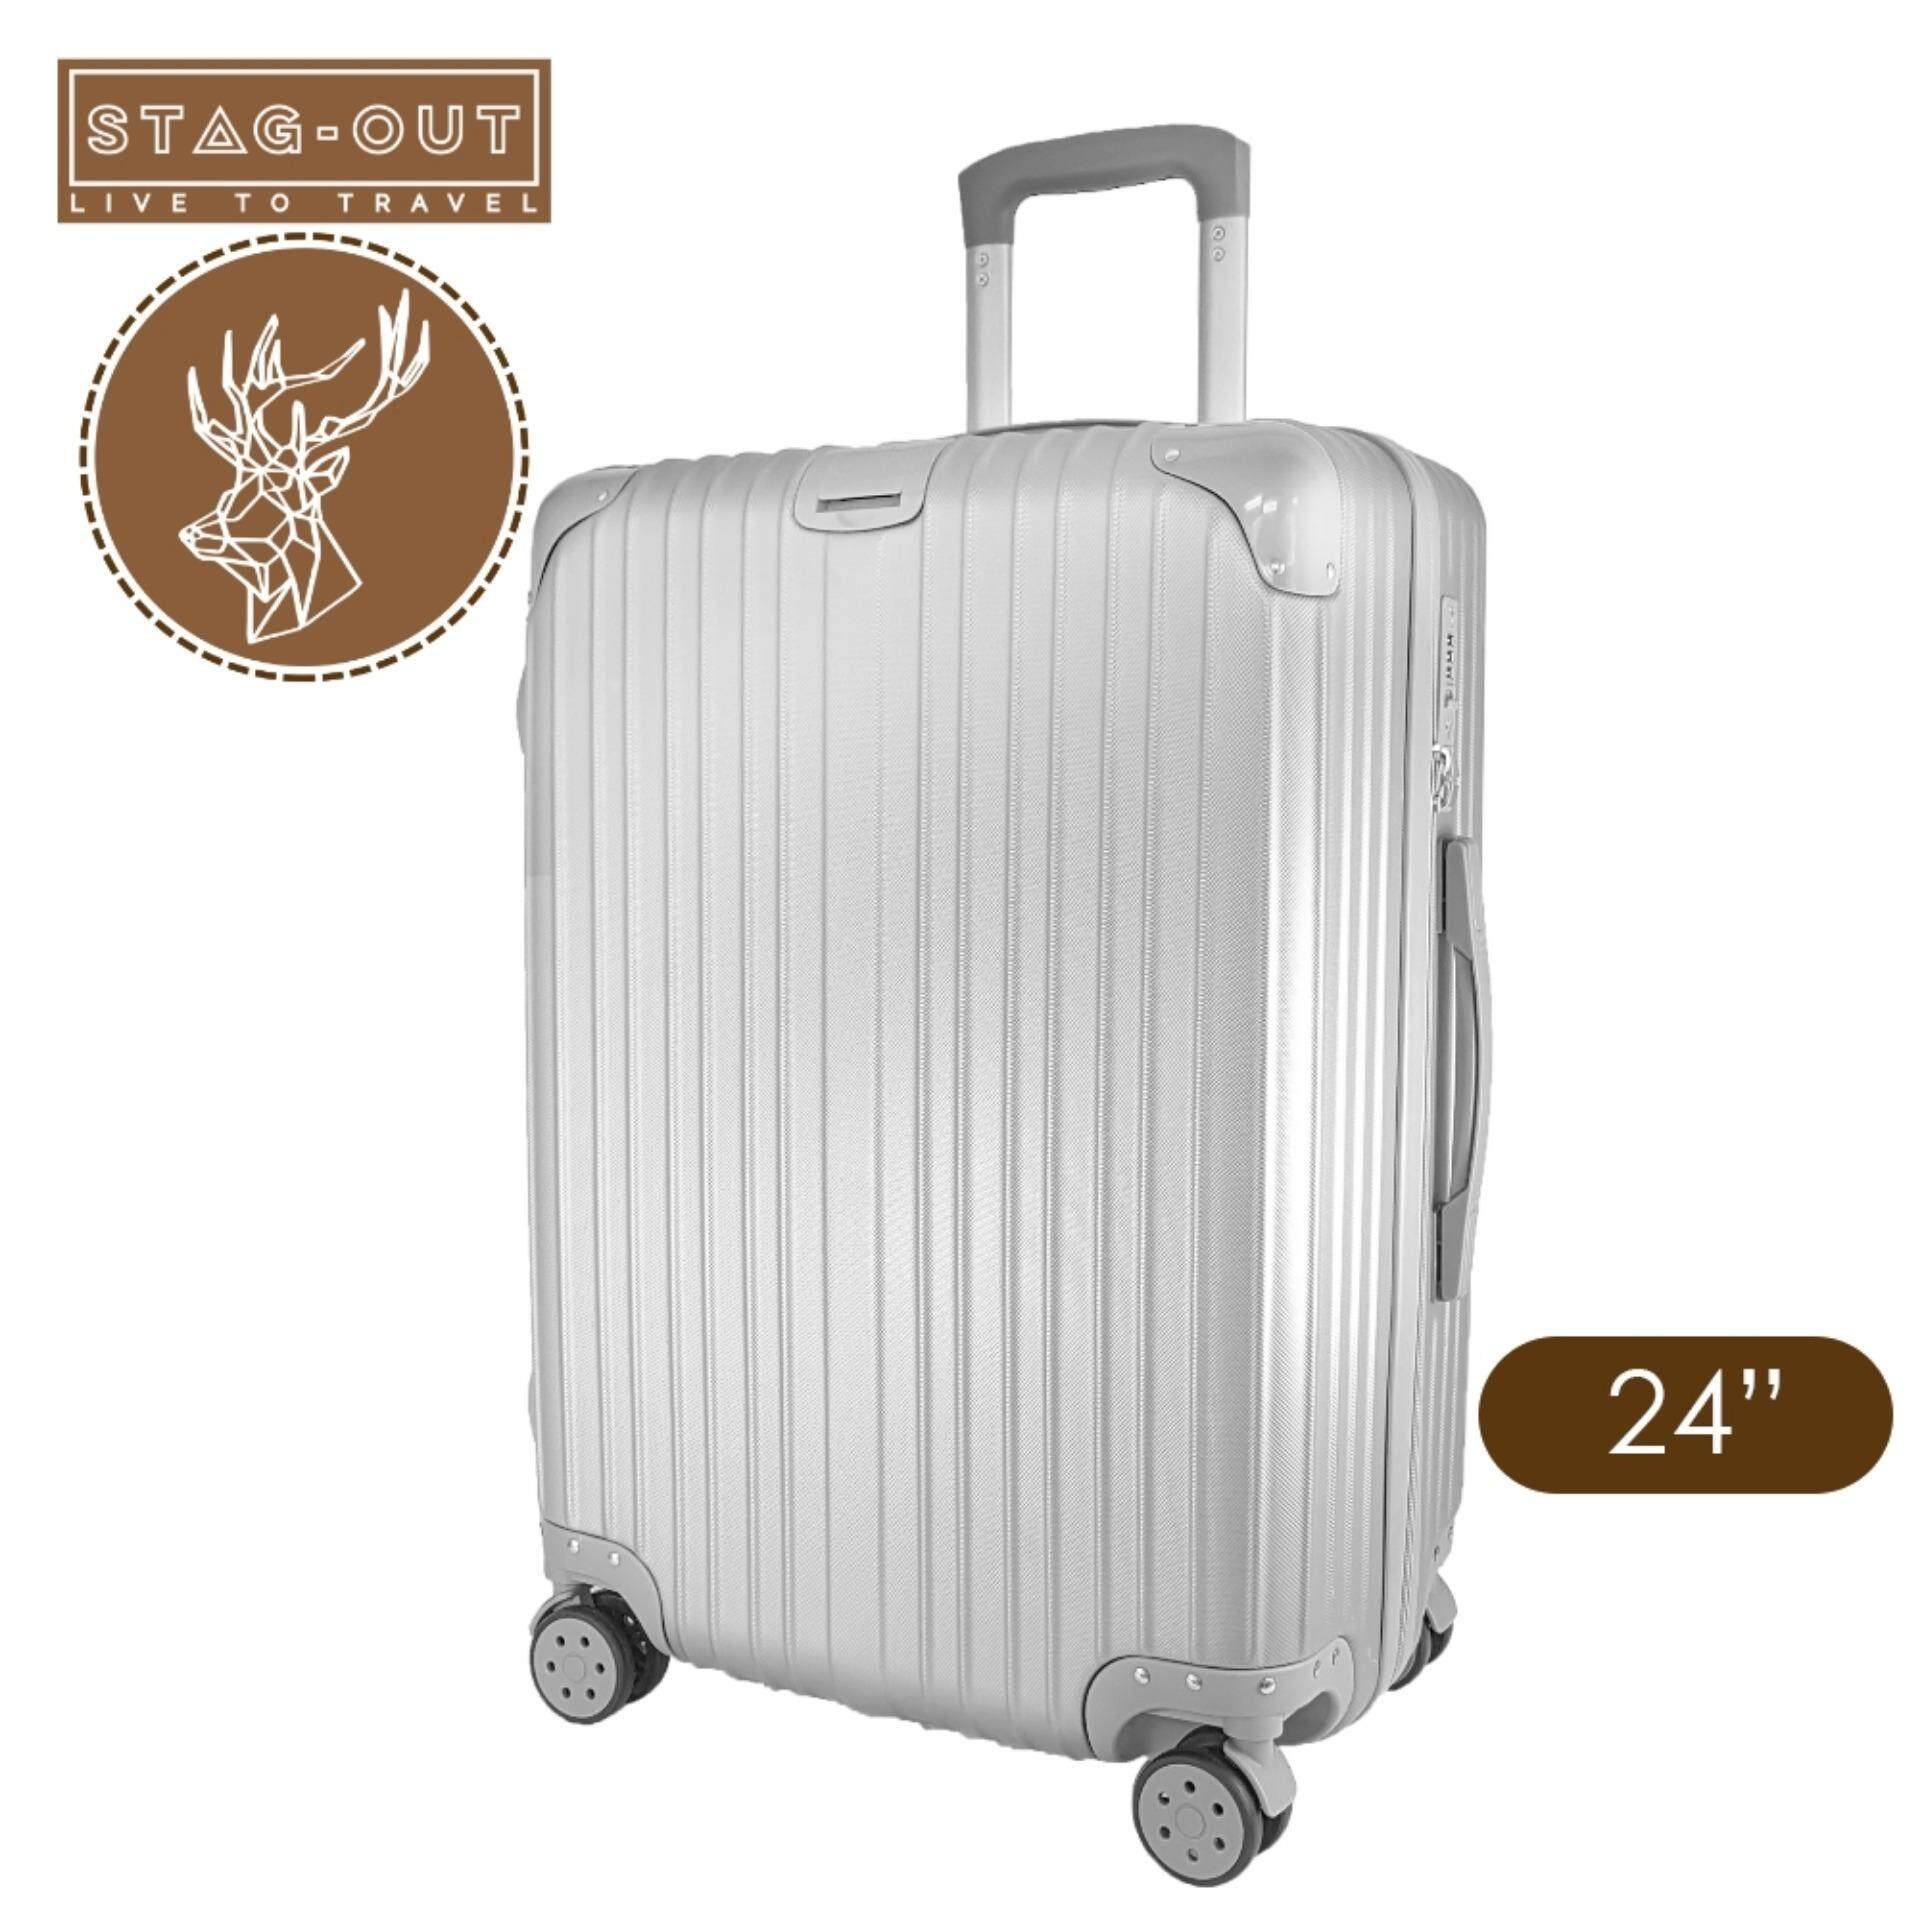 "[Stag-Out] Amirates Premium Glossy 24"" ABS+PC Hardcase Travel Check"